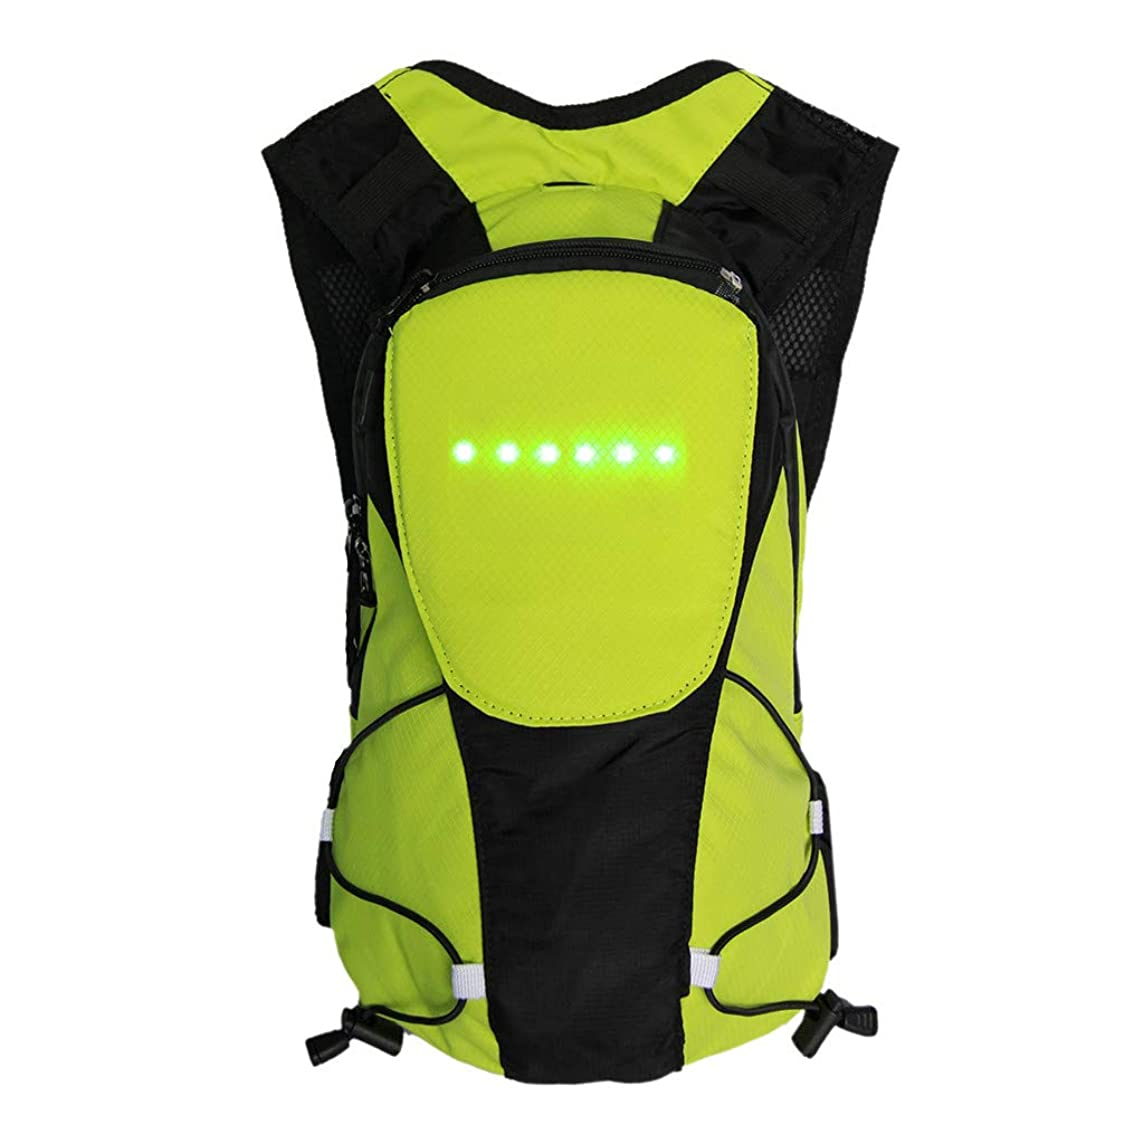 Gotian Safety Cycling LED Wireless Remote Control Turn Signal Warning Lamp Backpack Bag, Safest Option for Visibility When Traveling Roadside Day Or Night.